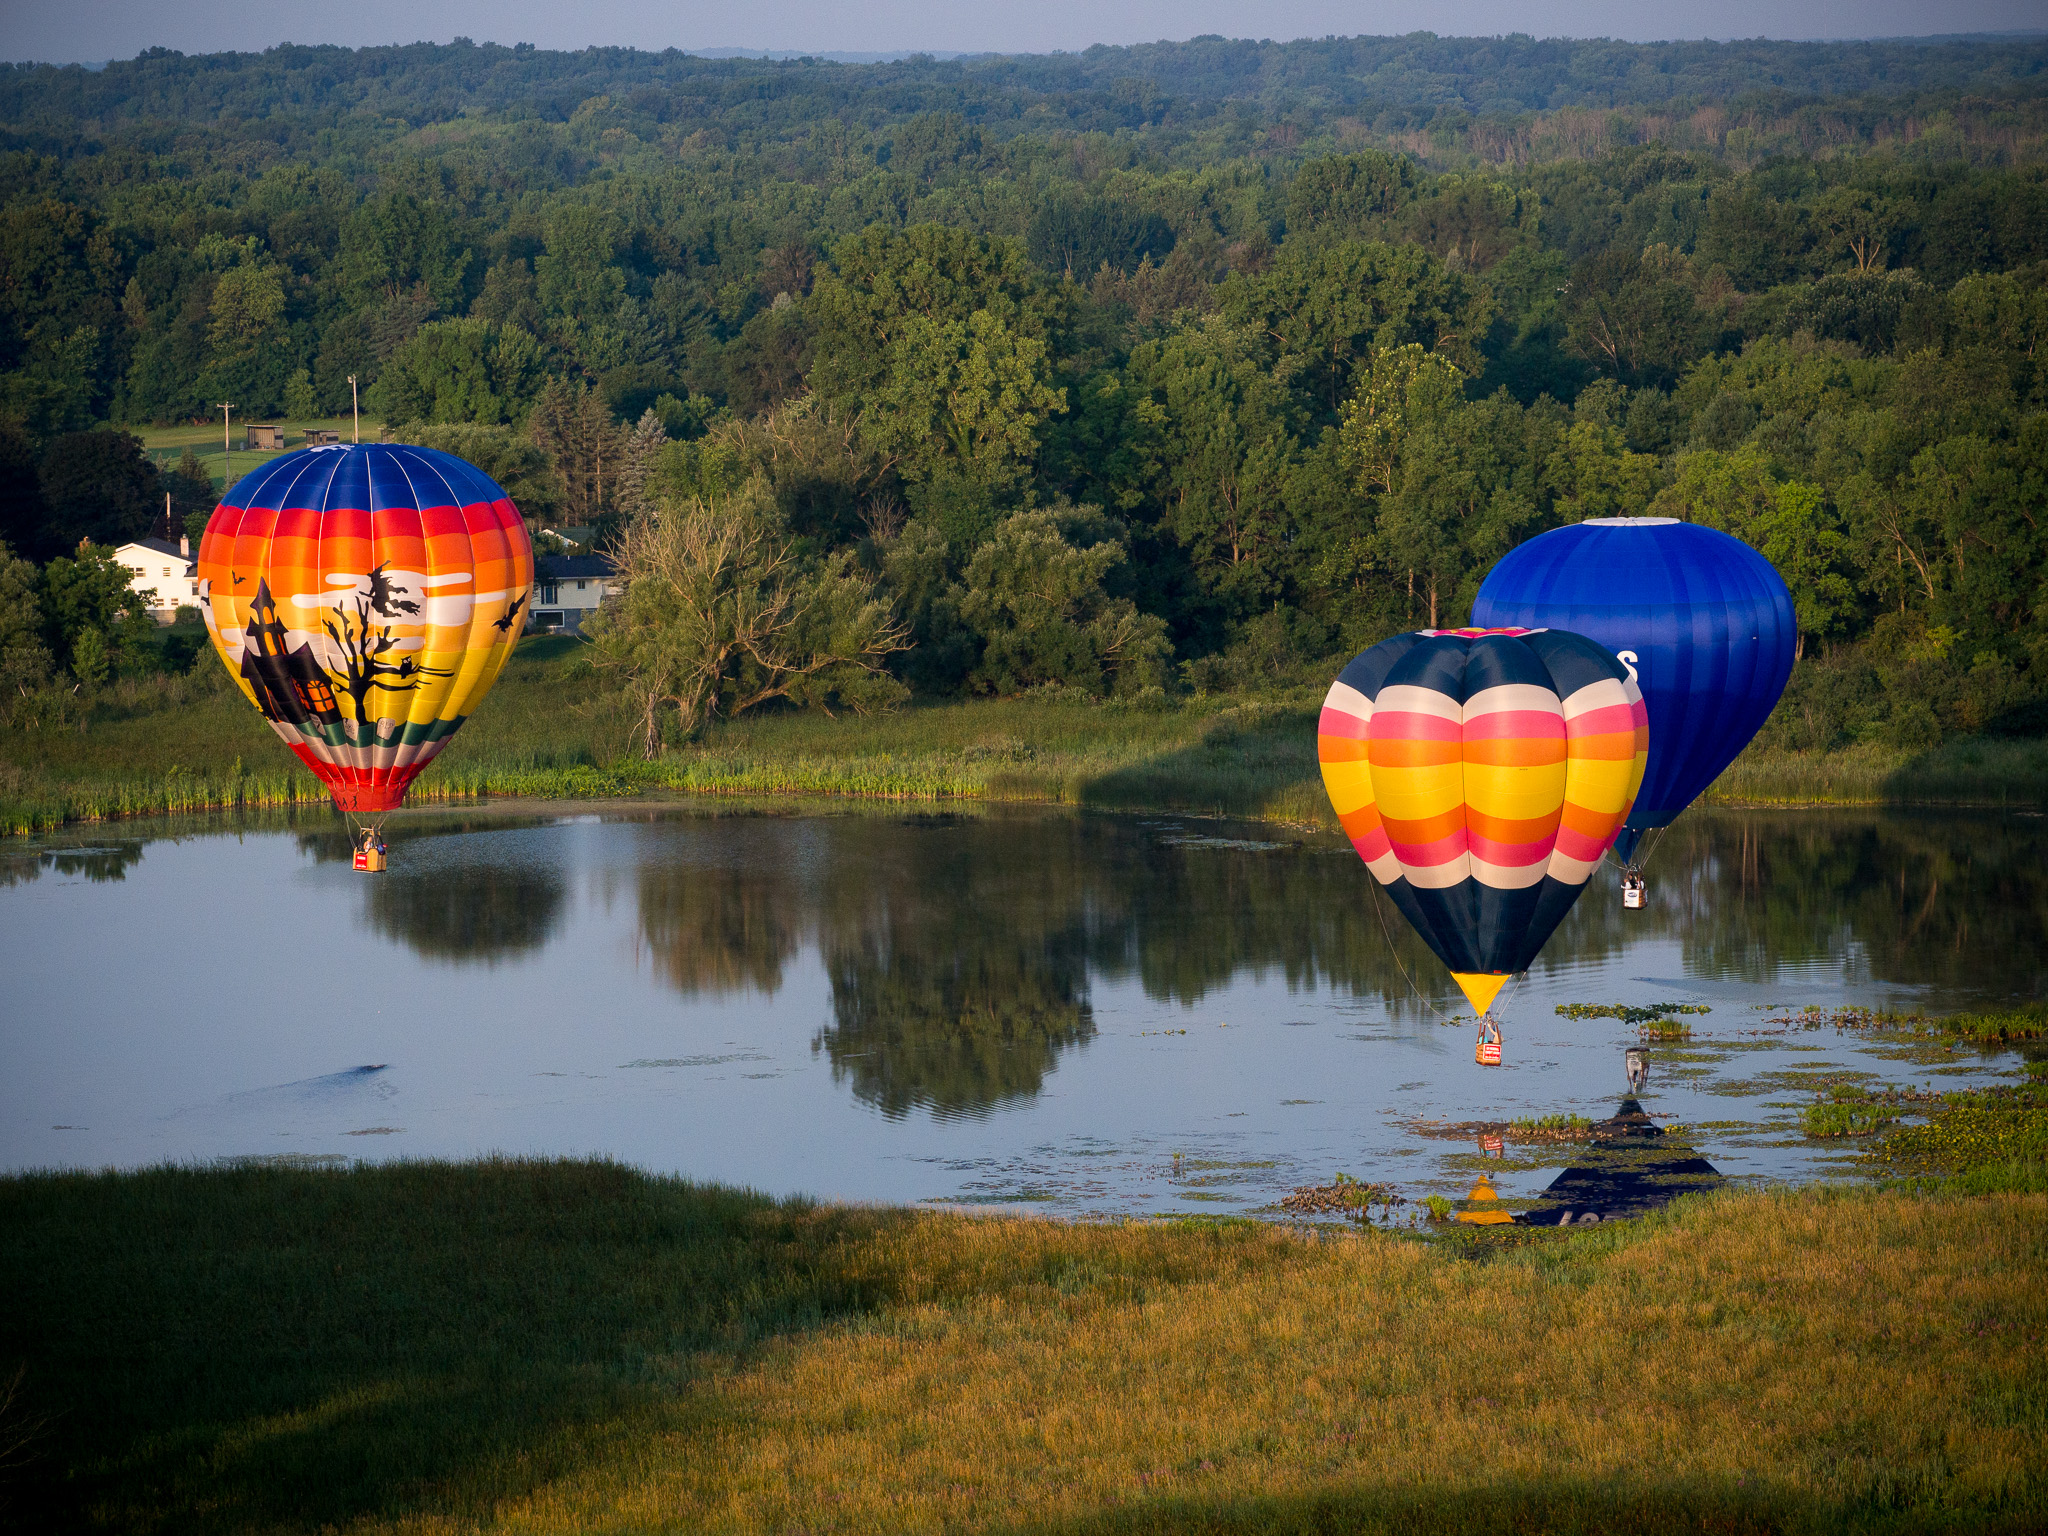 Photographing balloons is best done from the basket of another balloon!